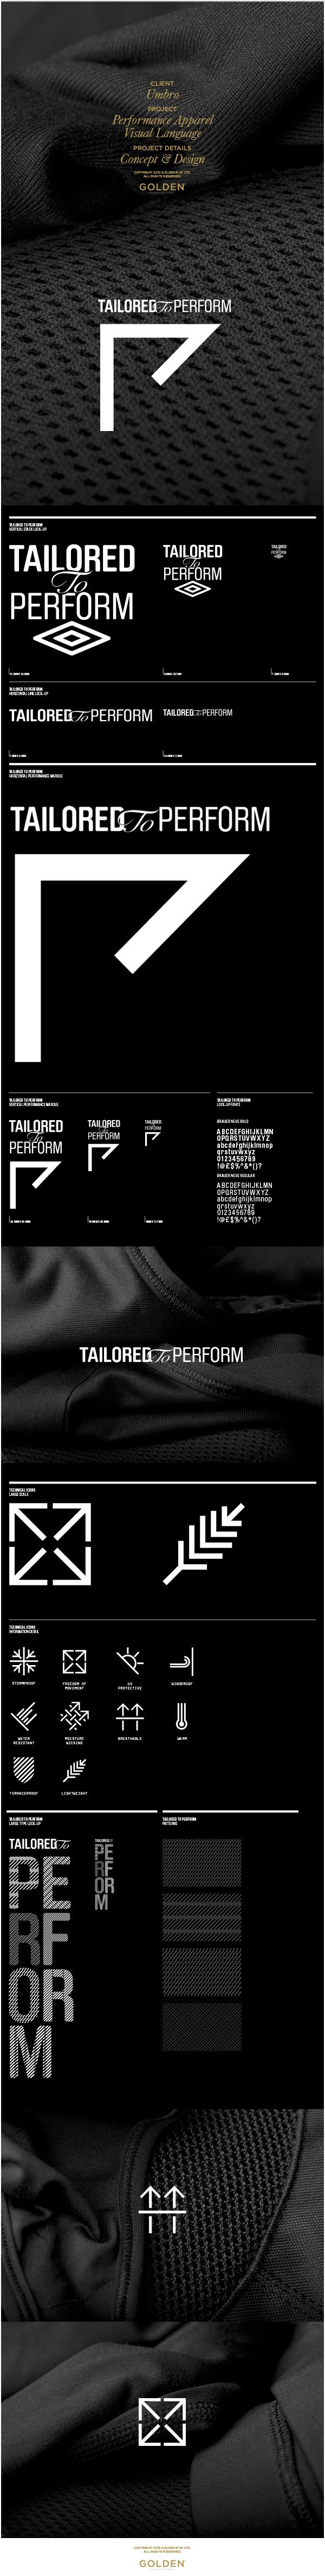 Identity / Umbro Performance Apparel Visual Language by GOLDEN